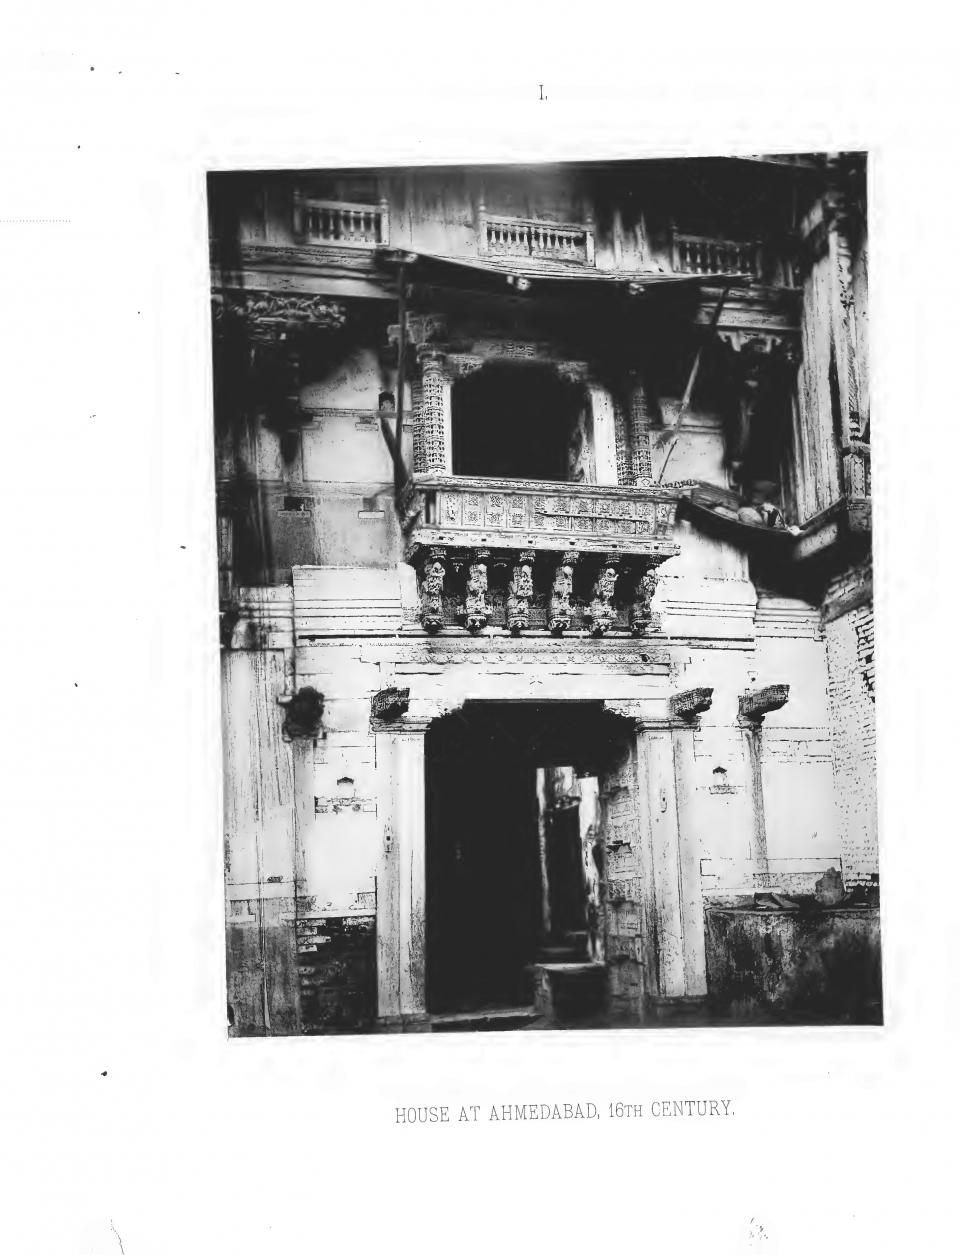 PLATE I. HOUSE AT AHMEDABAD, 16th CENTURY.